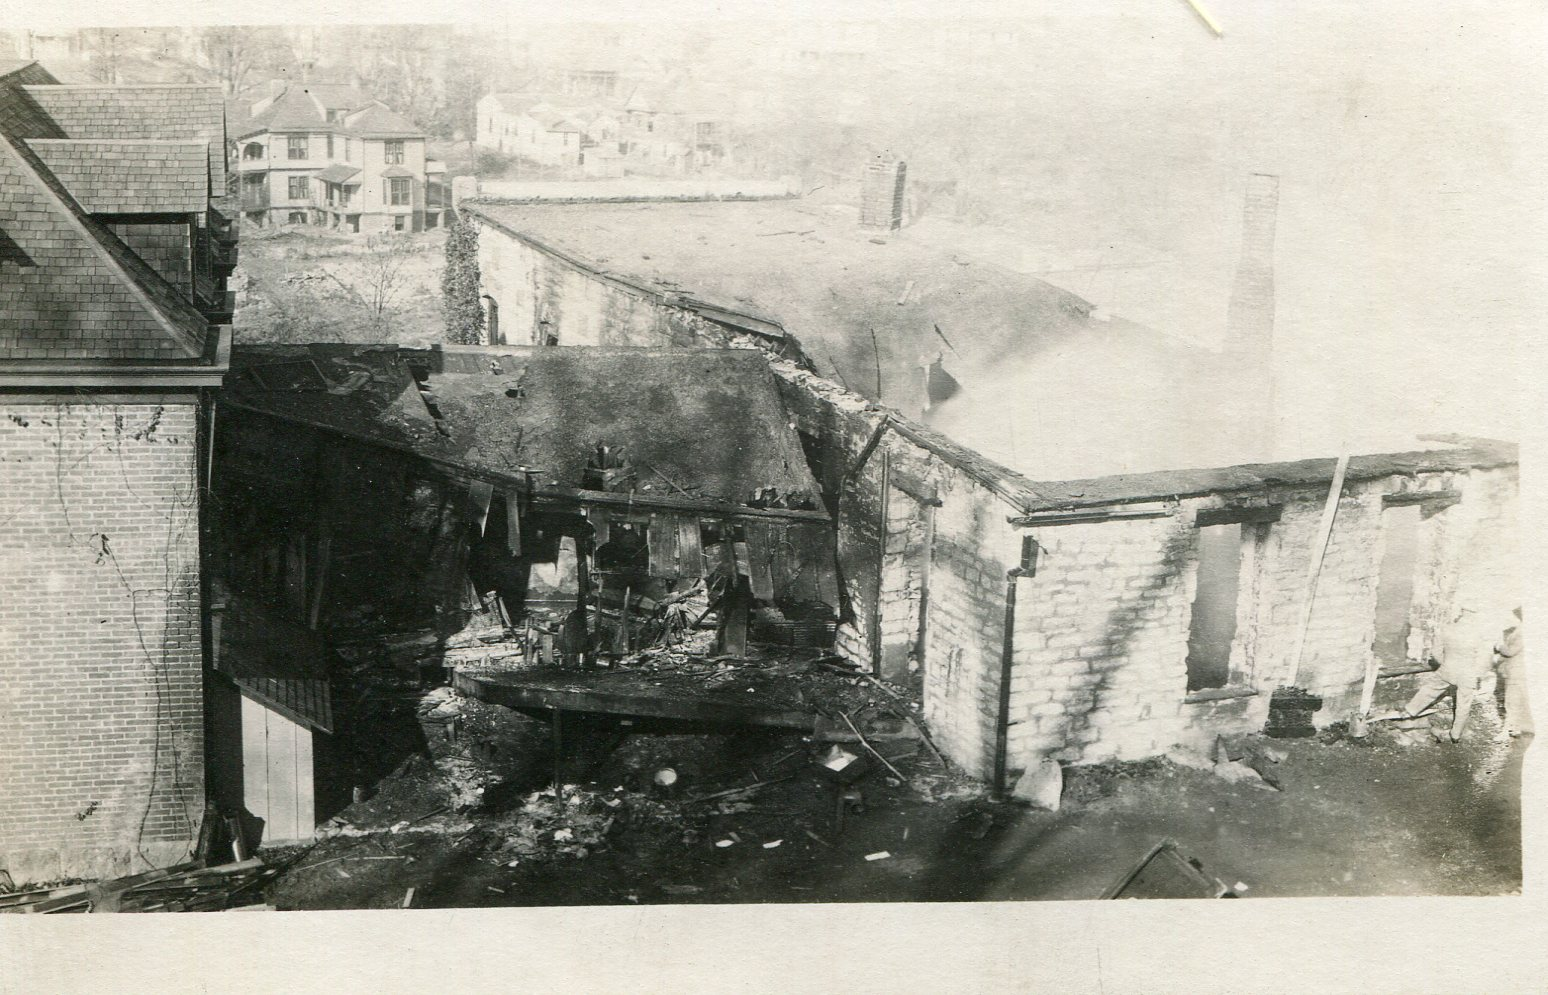 The remains of Nickel after a control burn due to structural damage caused by students in 1967. This photo is from the 1968 demolition of the building.